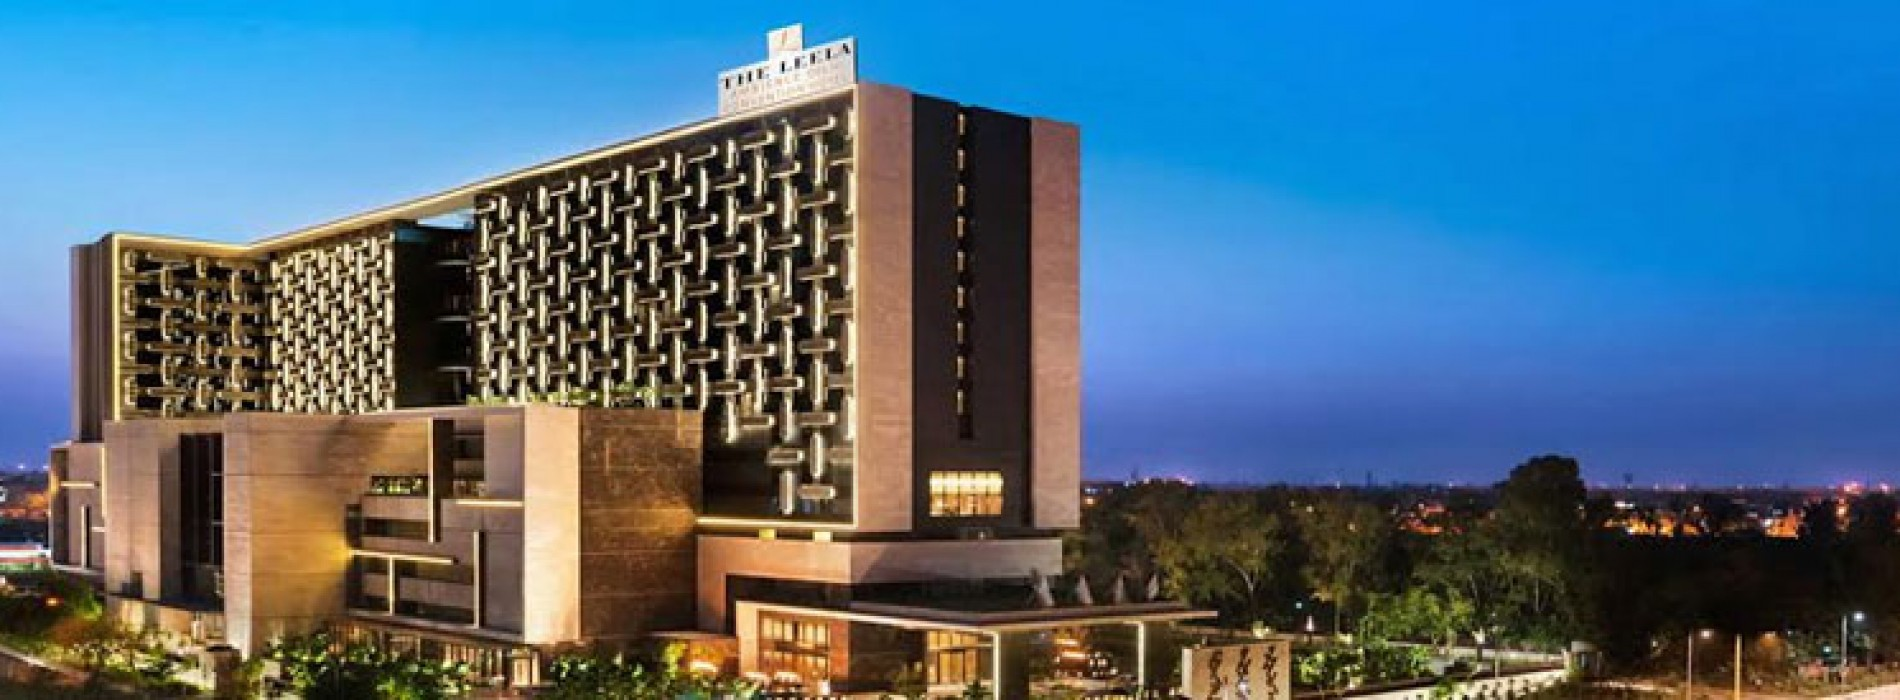 The Leela Expands With Third Luxury Hotel in National Capital Region